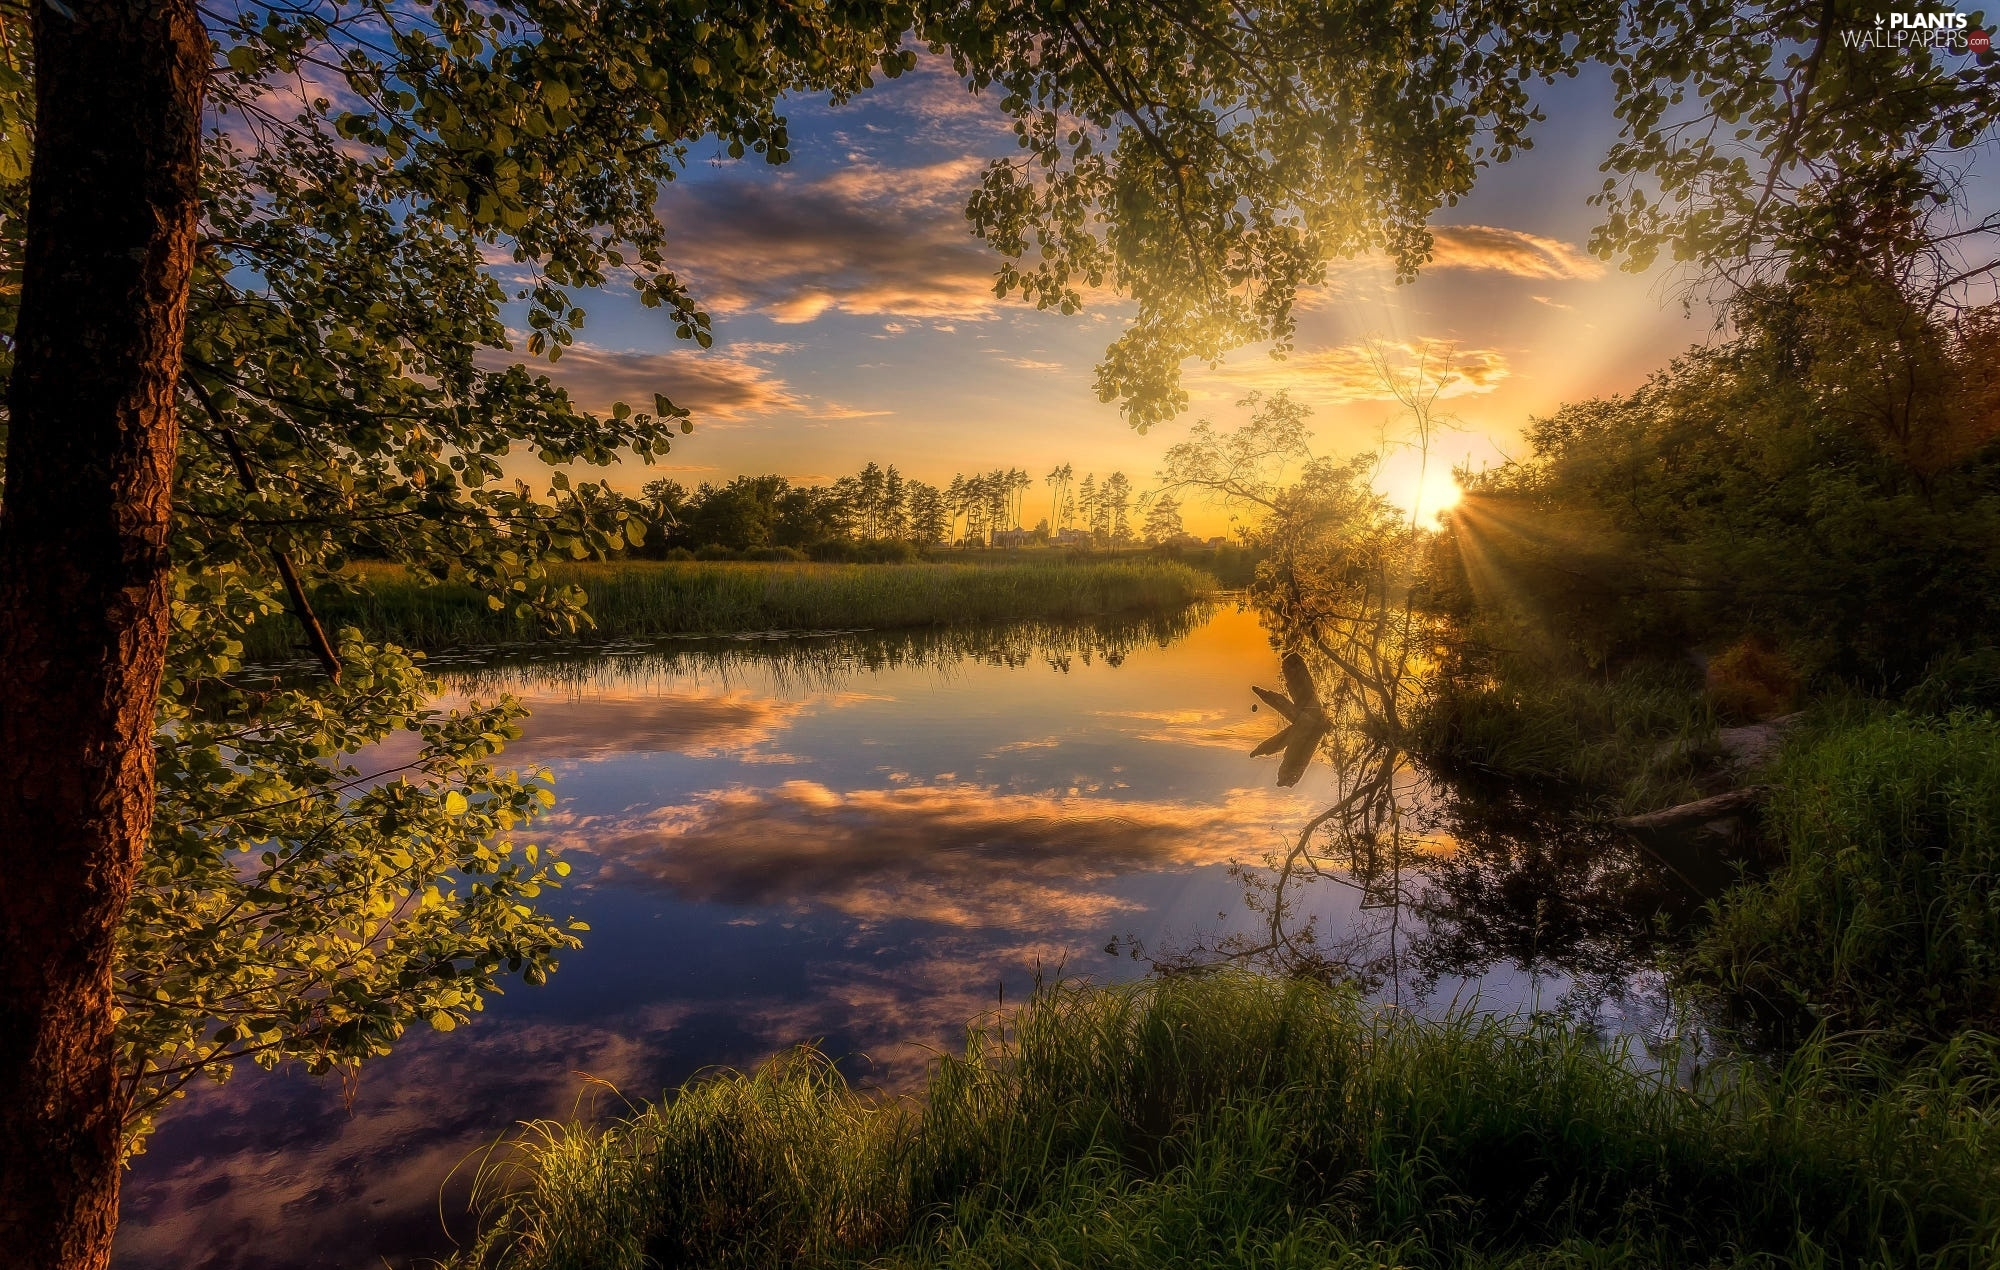 viewes, River, Sunrise, clouds, VEGETATION, trees